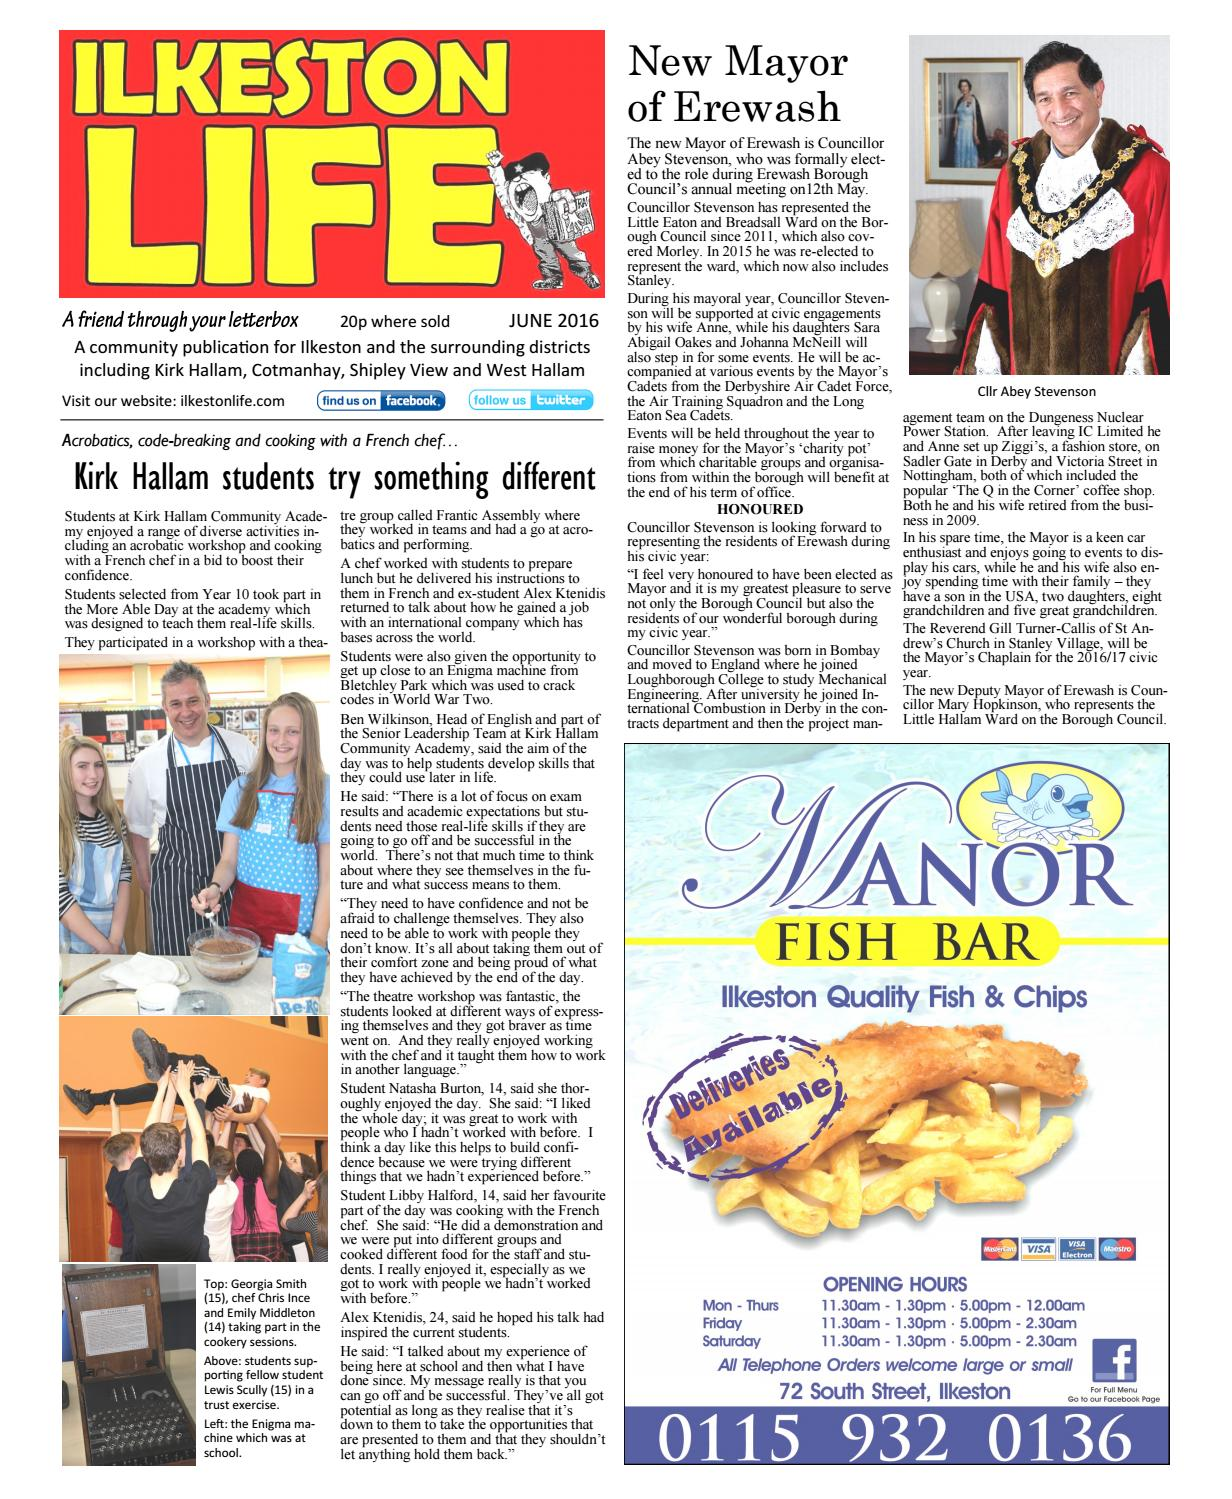 Ilkeston Life June 2016 newspaper by Ilkeston Life - issuu